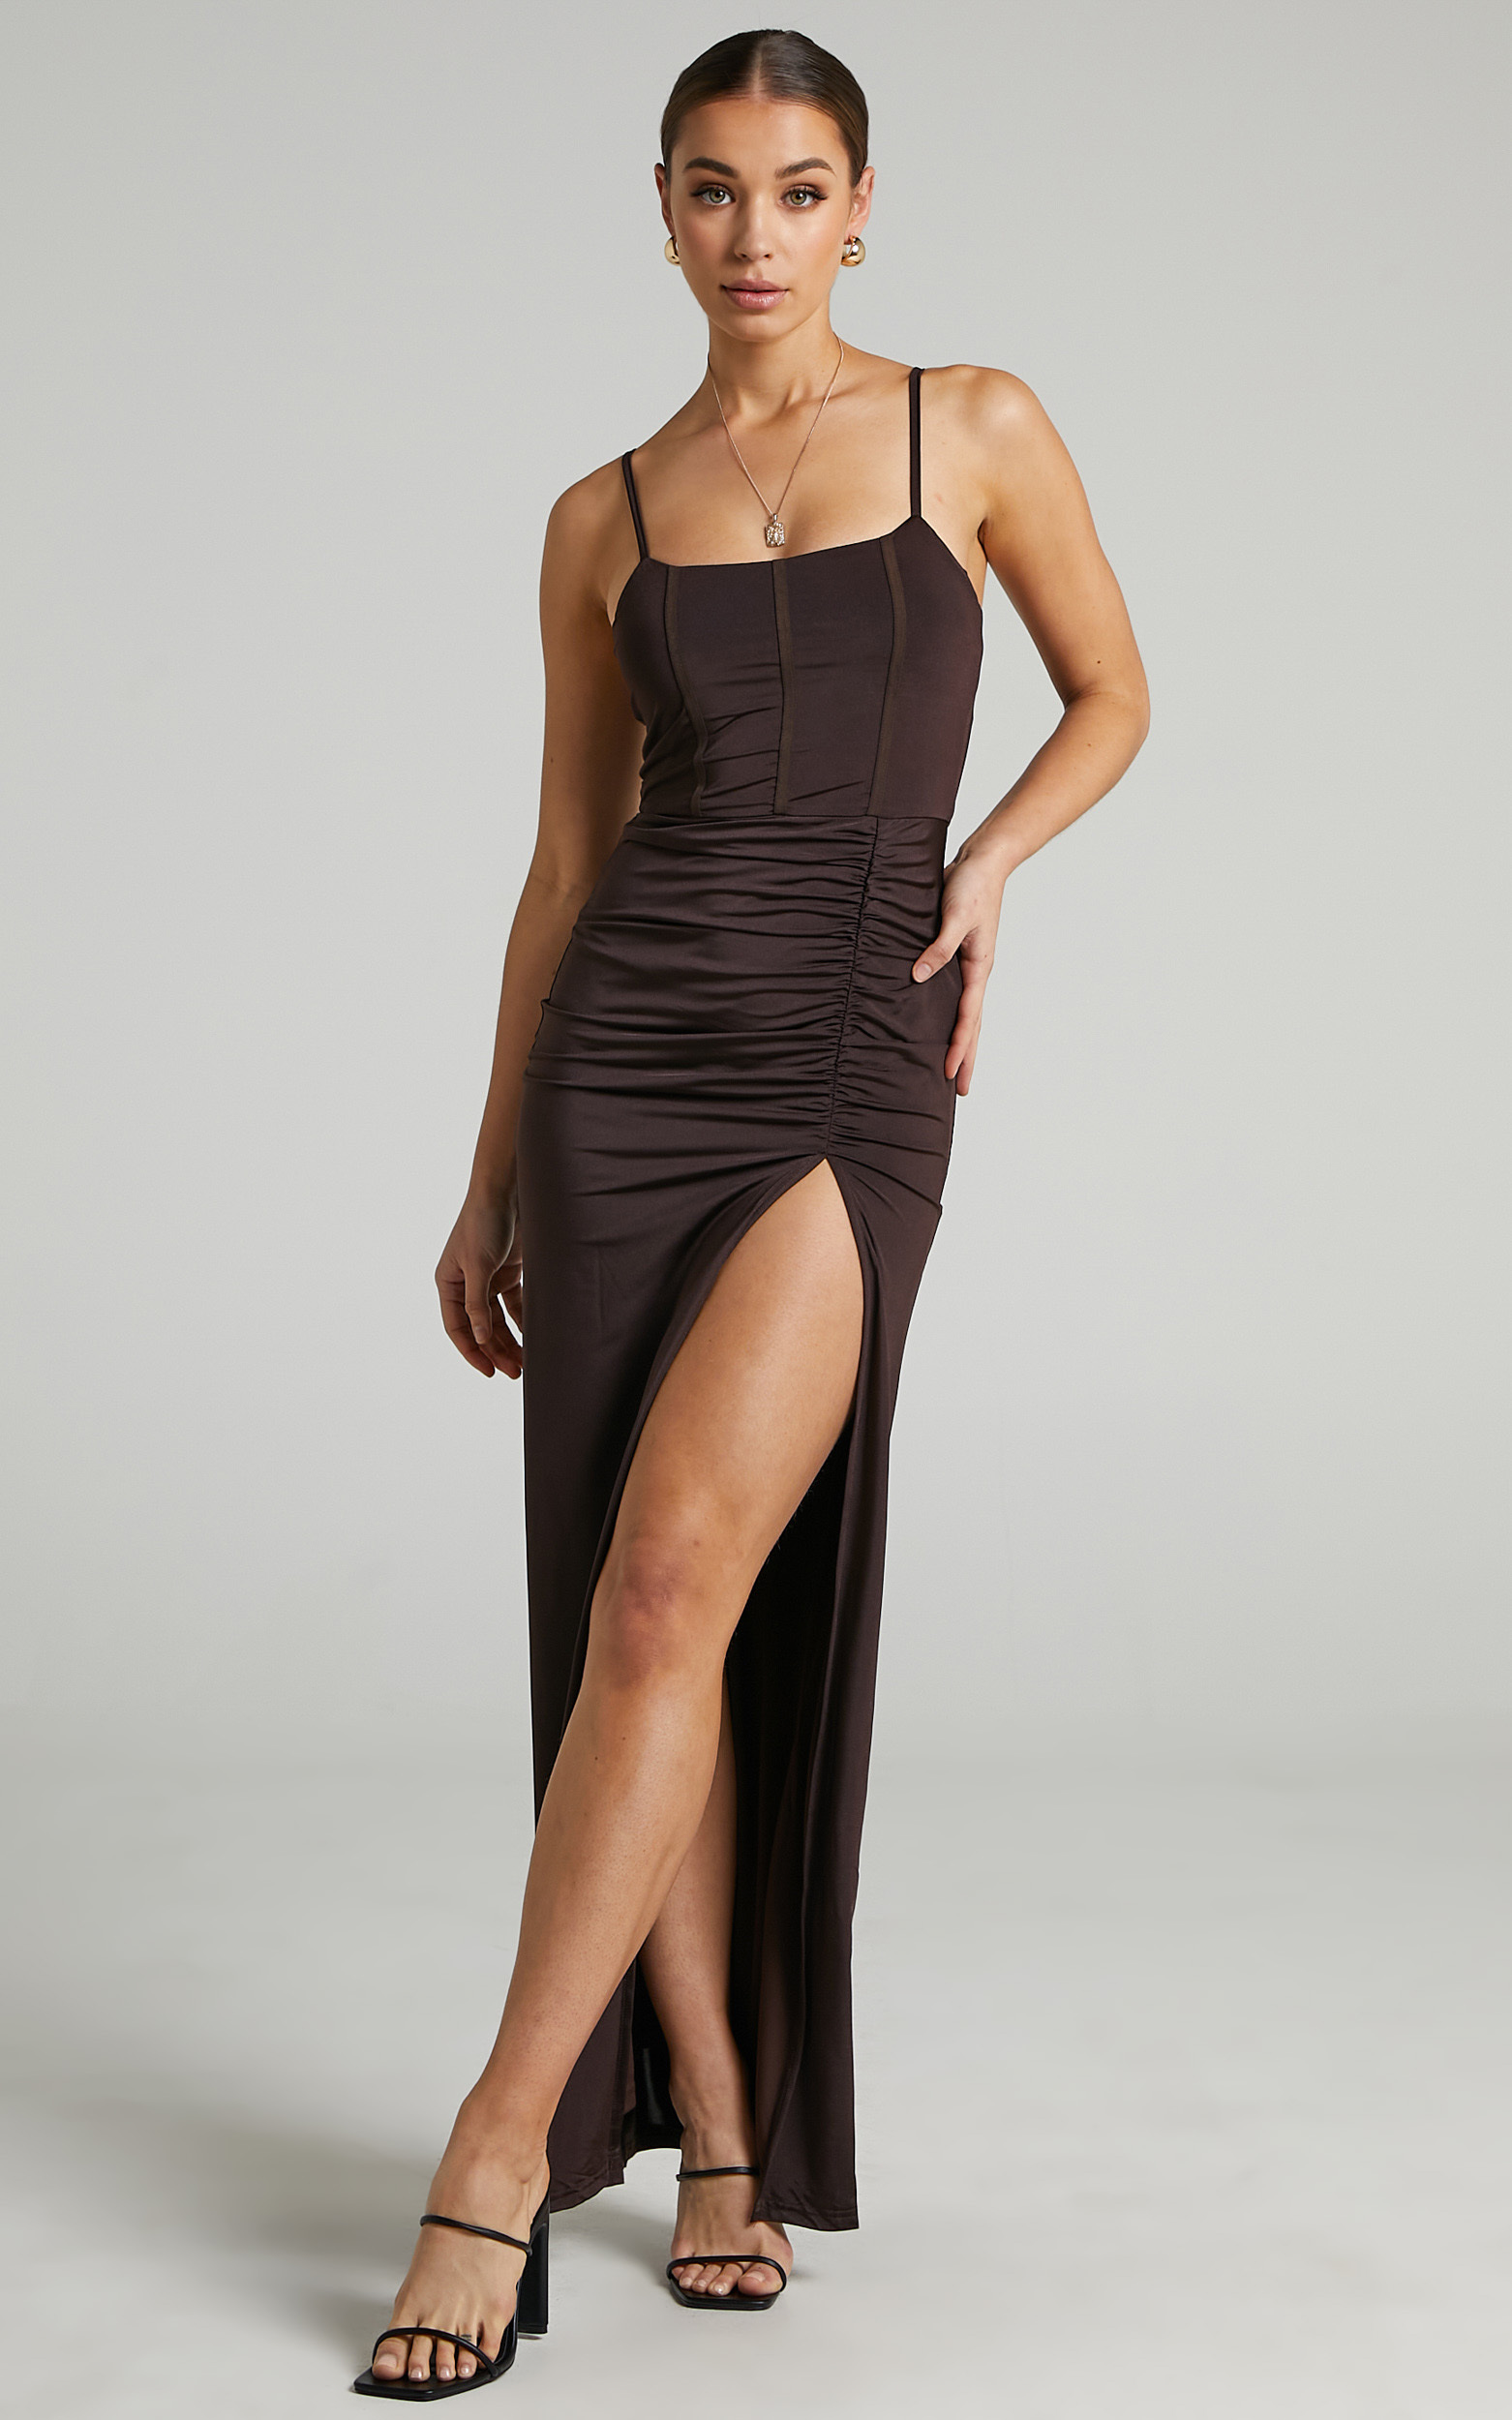 Trinah Corset Maxi Dress in Chocolate - 06, BRN2, hi-res image number null